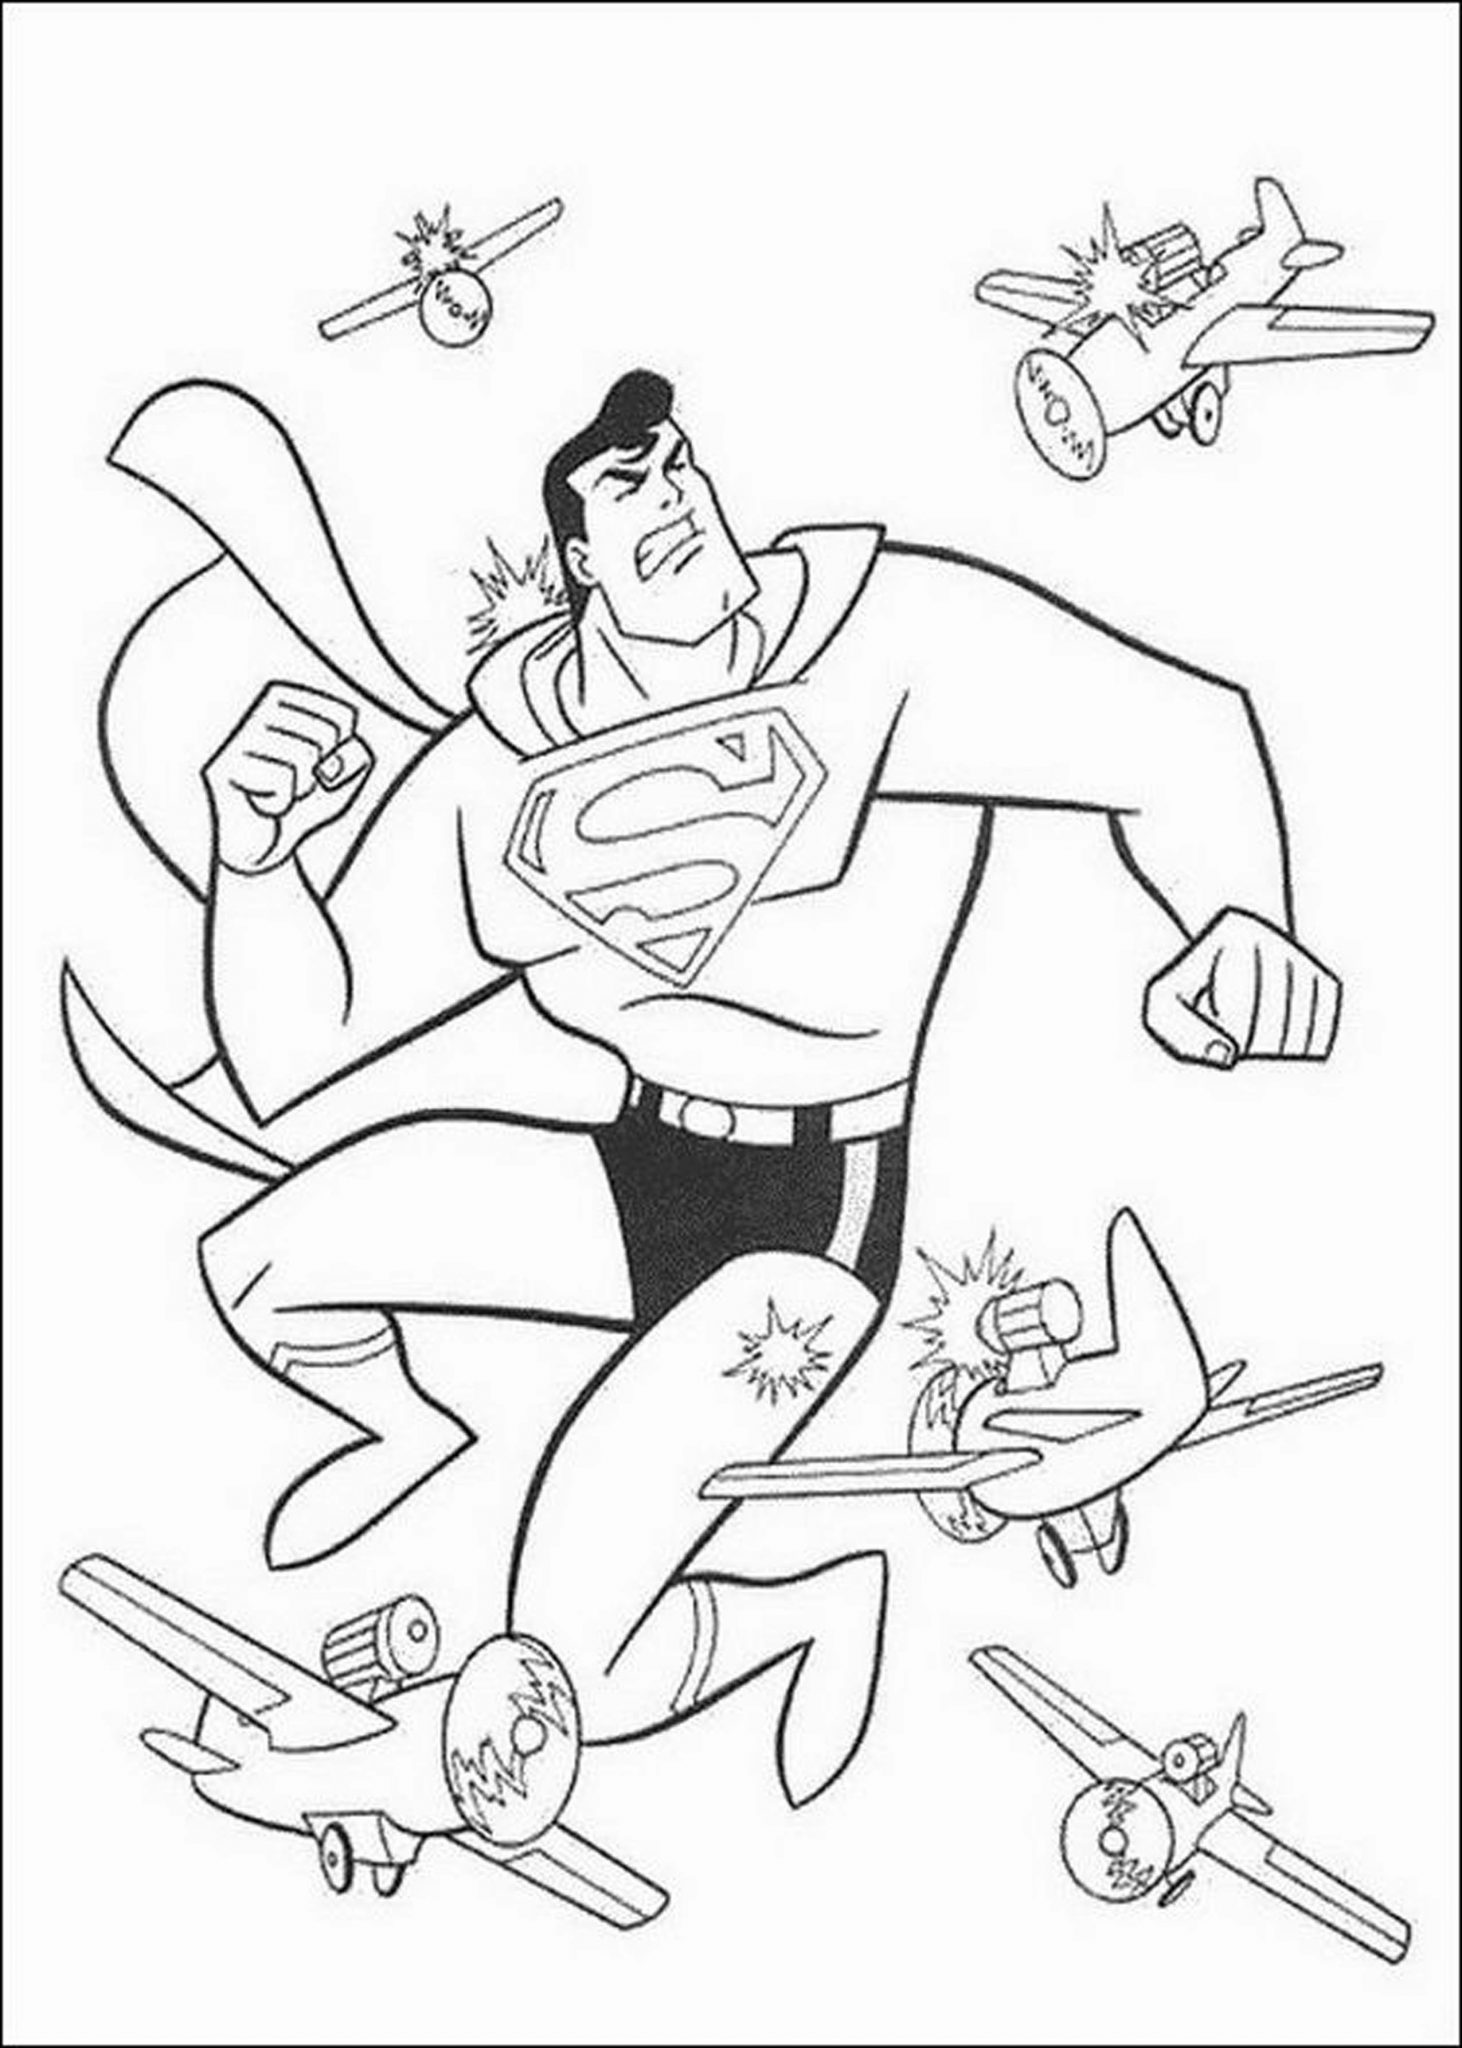 Coloring Pages For Boys Amp Training Shopping For Children